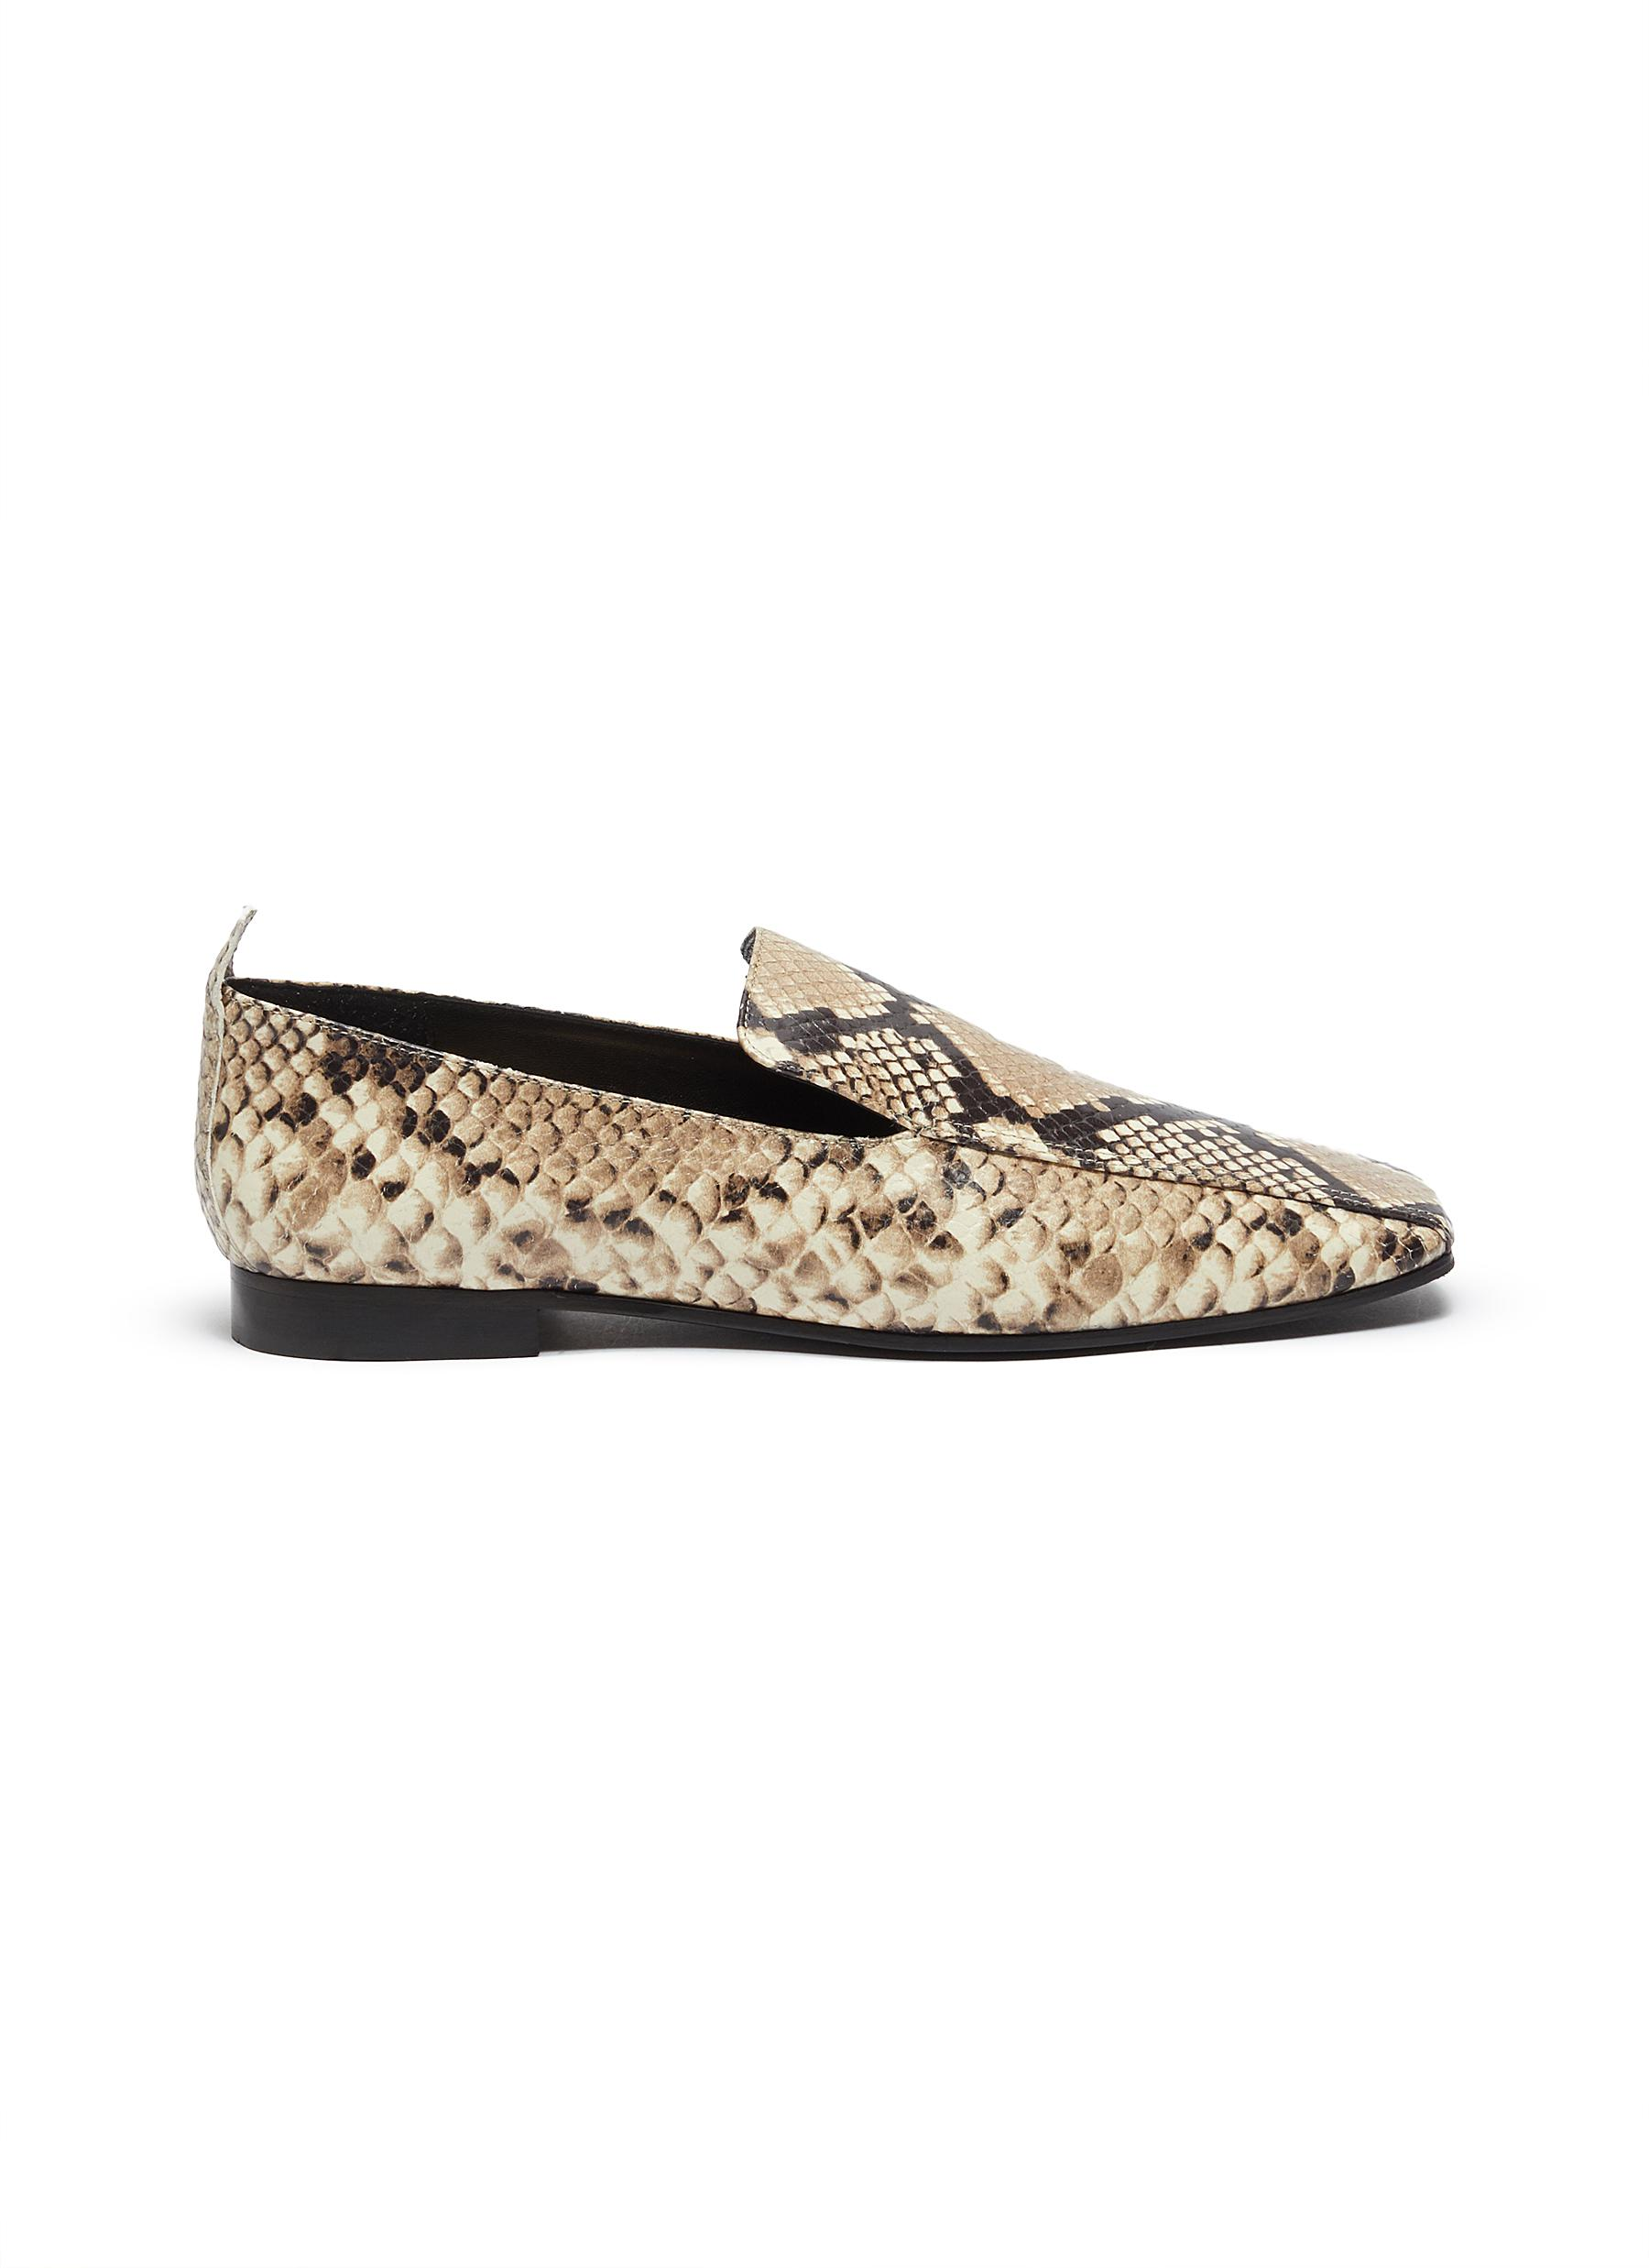 Snake-embossed leather loafers by Fabio Rusconi